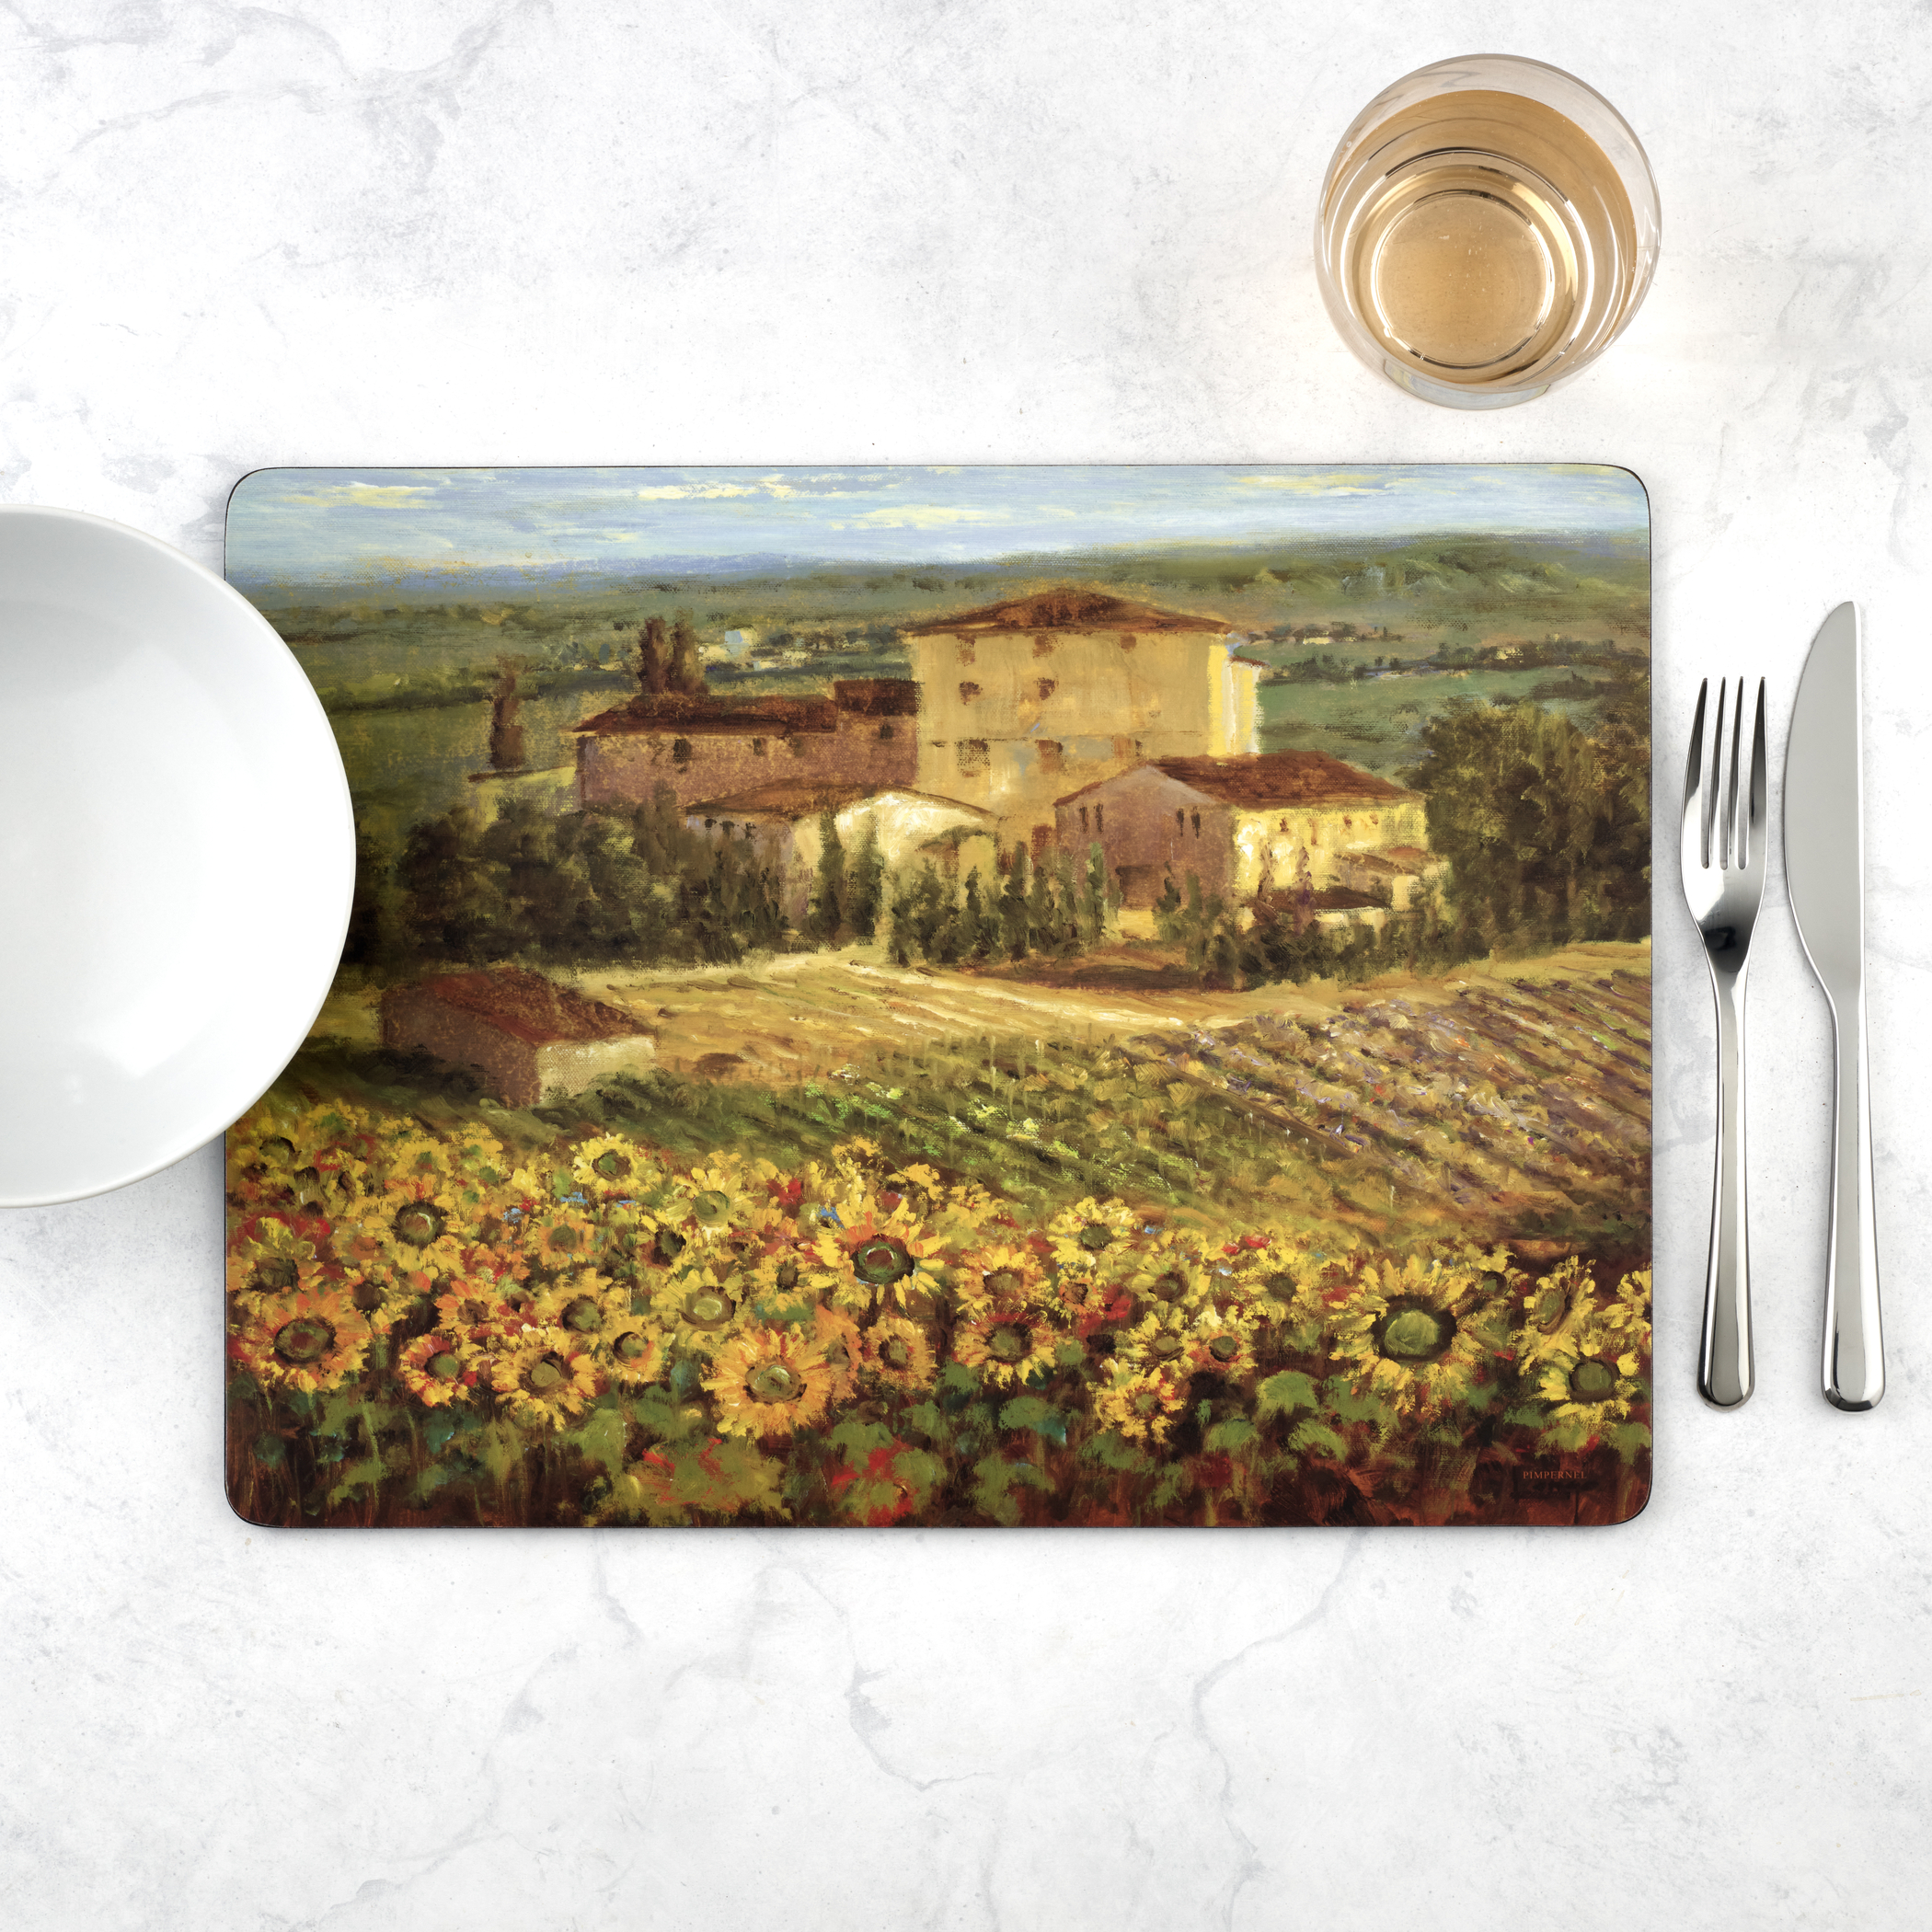 Pimpernel Tuscany Placemats Set of 4 image number 5